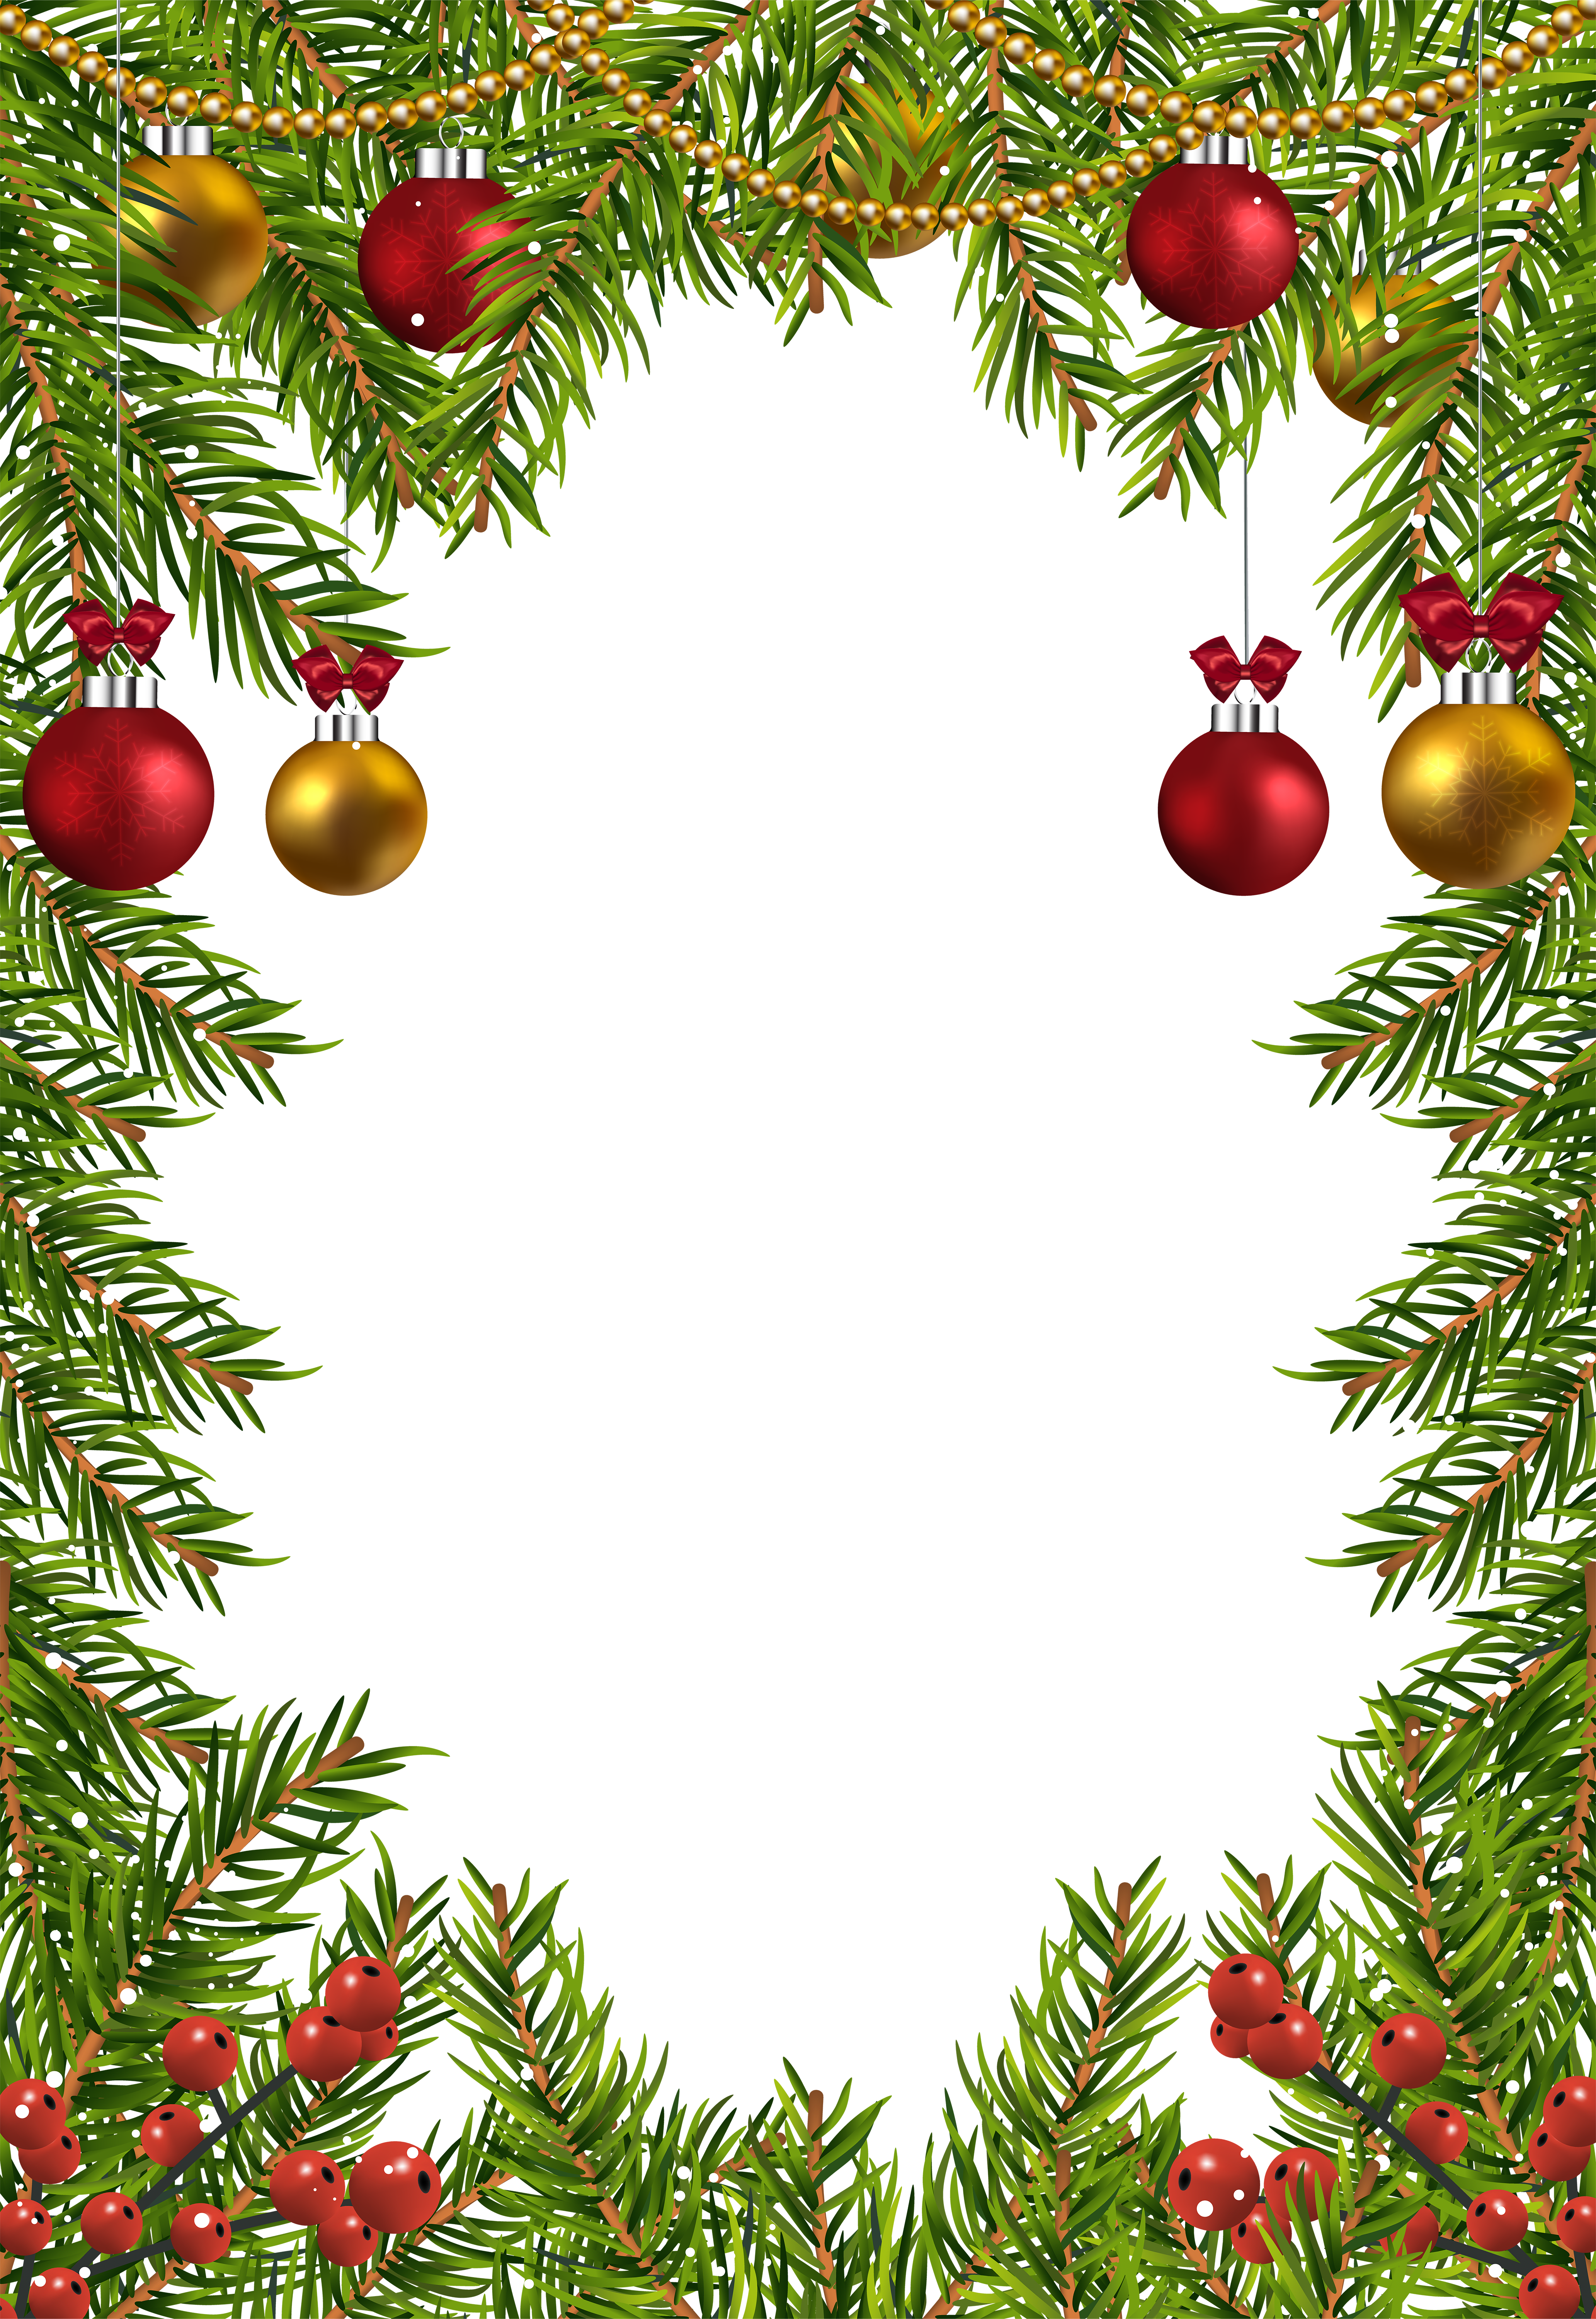 clip art freeuse Free christmas borders clipart. Transparent border frame gallery